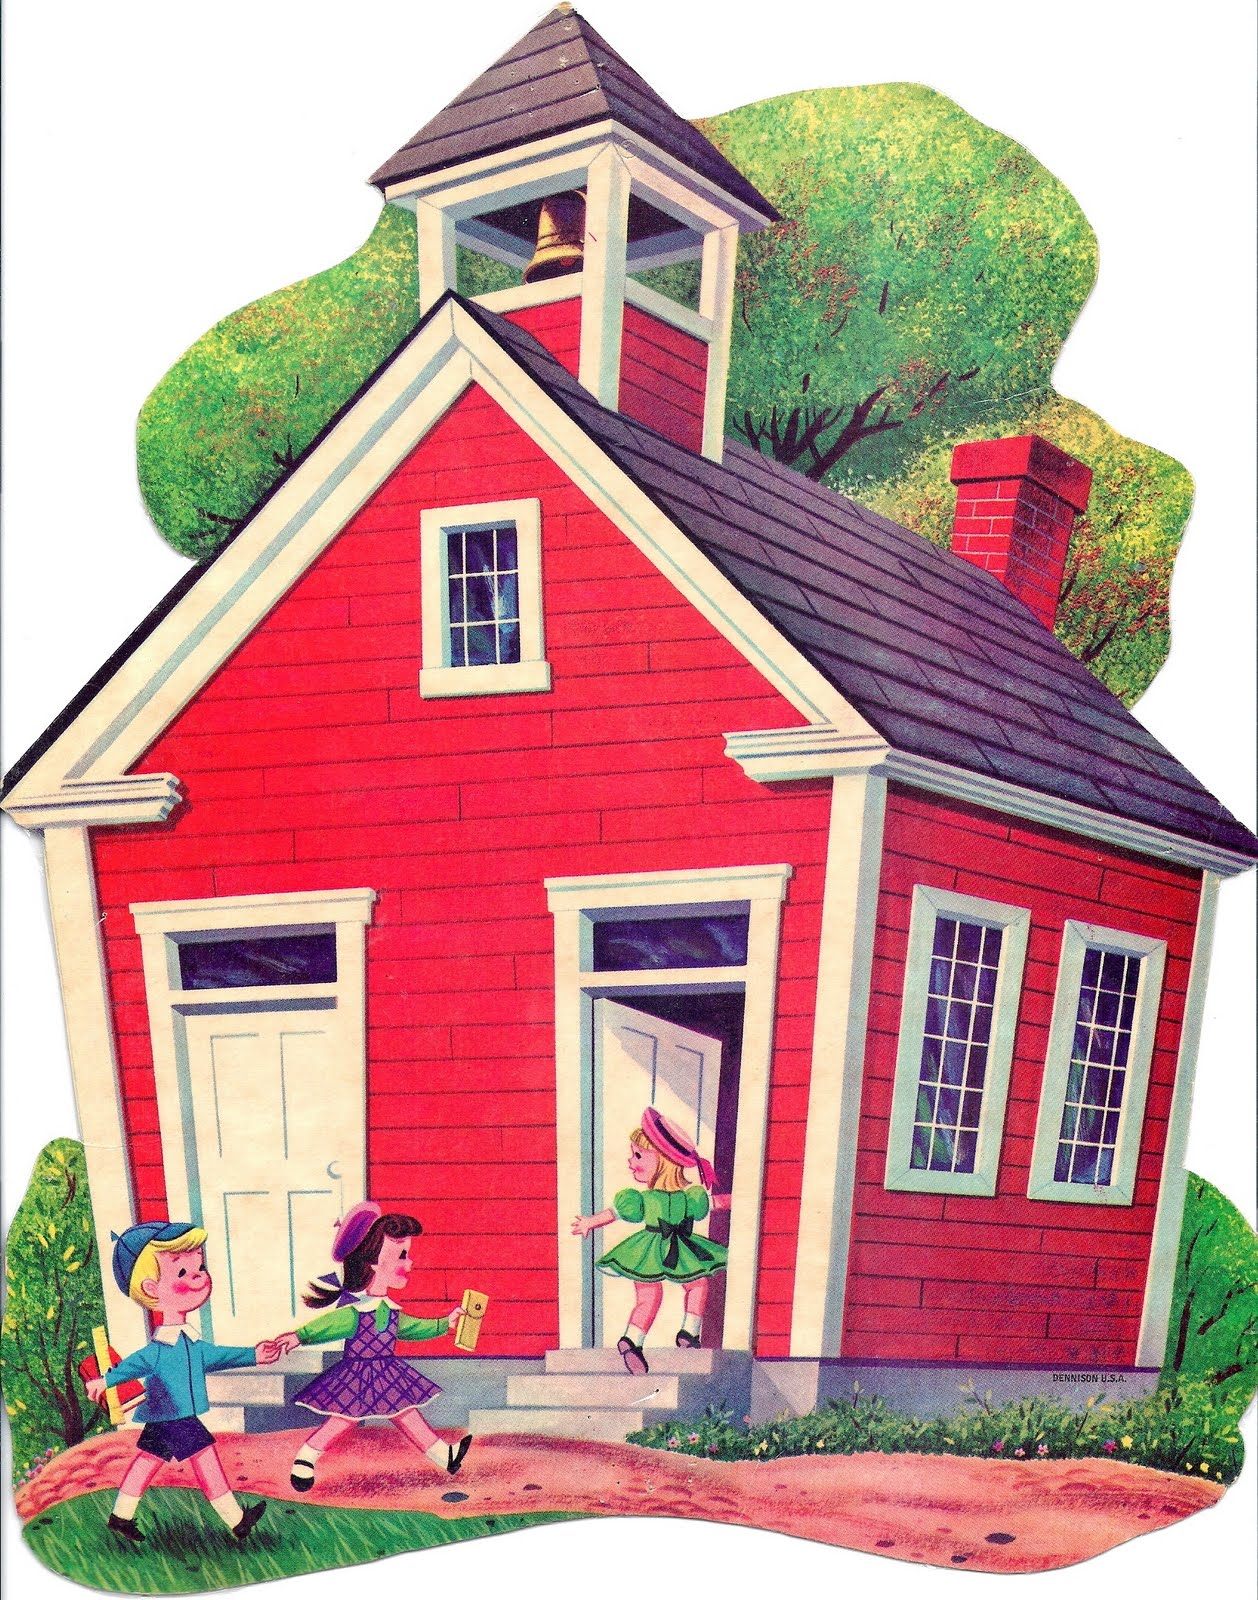 Picking the Perfect Preschool | The Deployment Diatribes